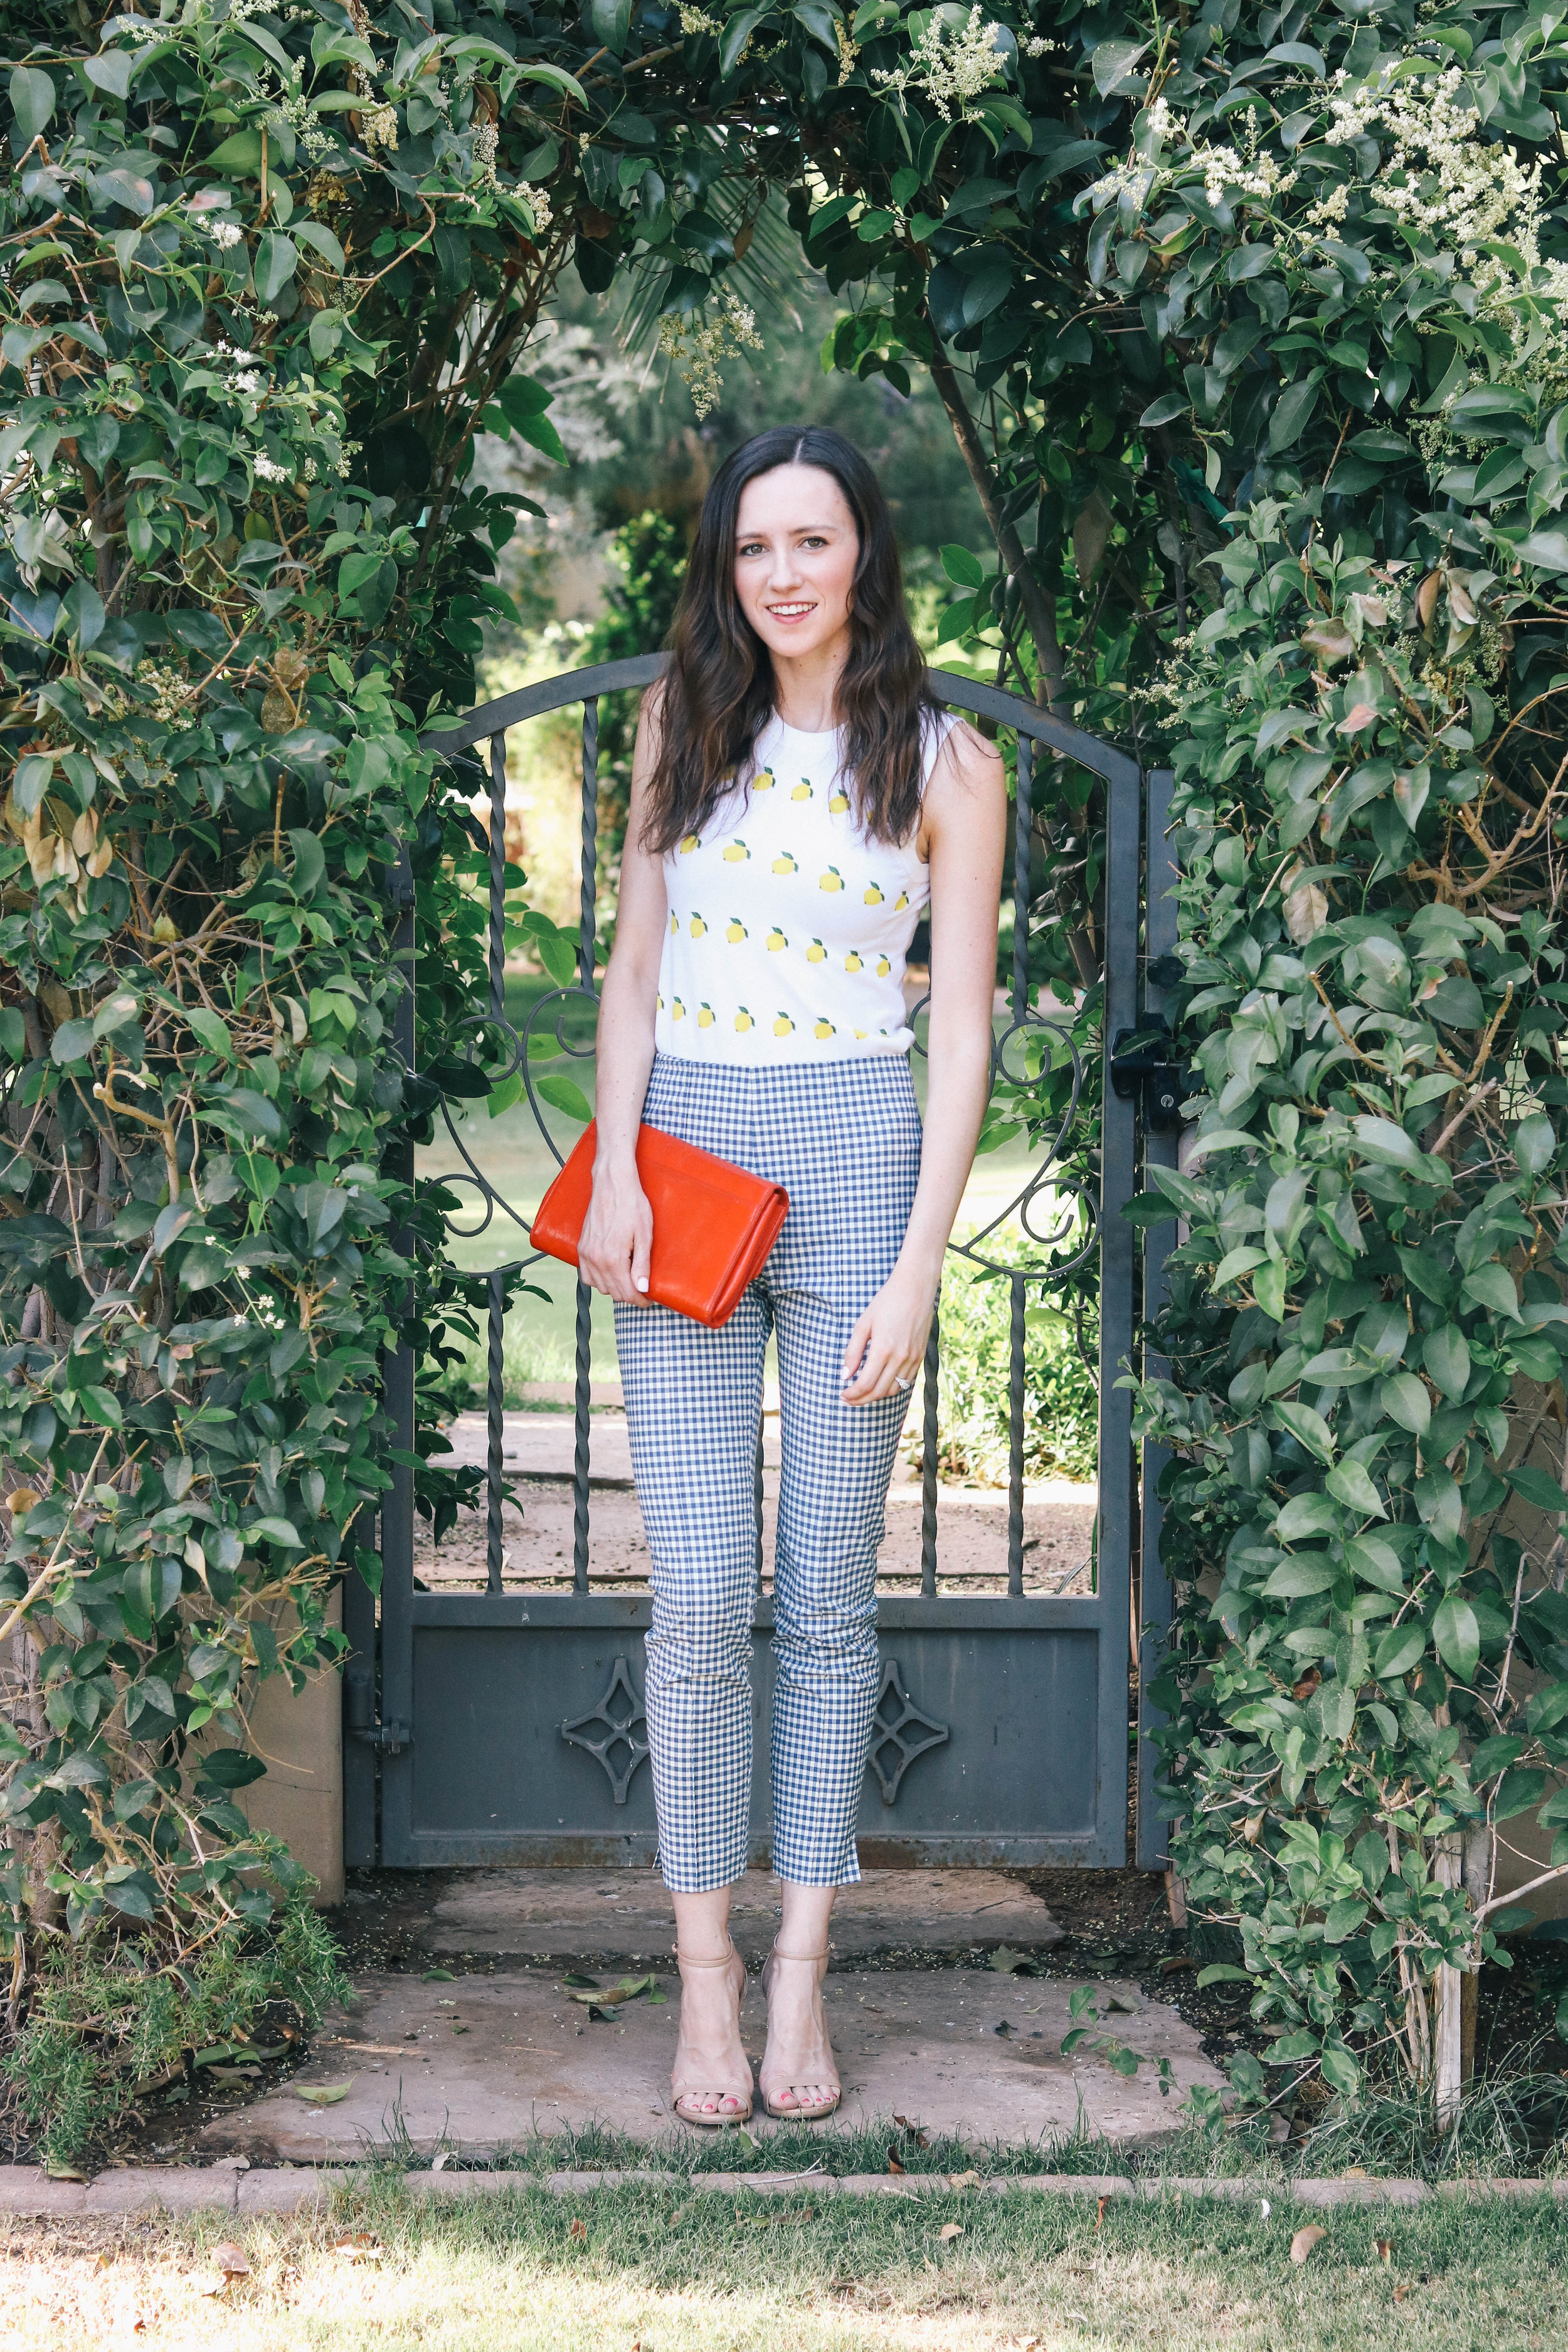 bb-summer-outfit-005 (1 of 1).jpg